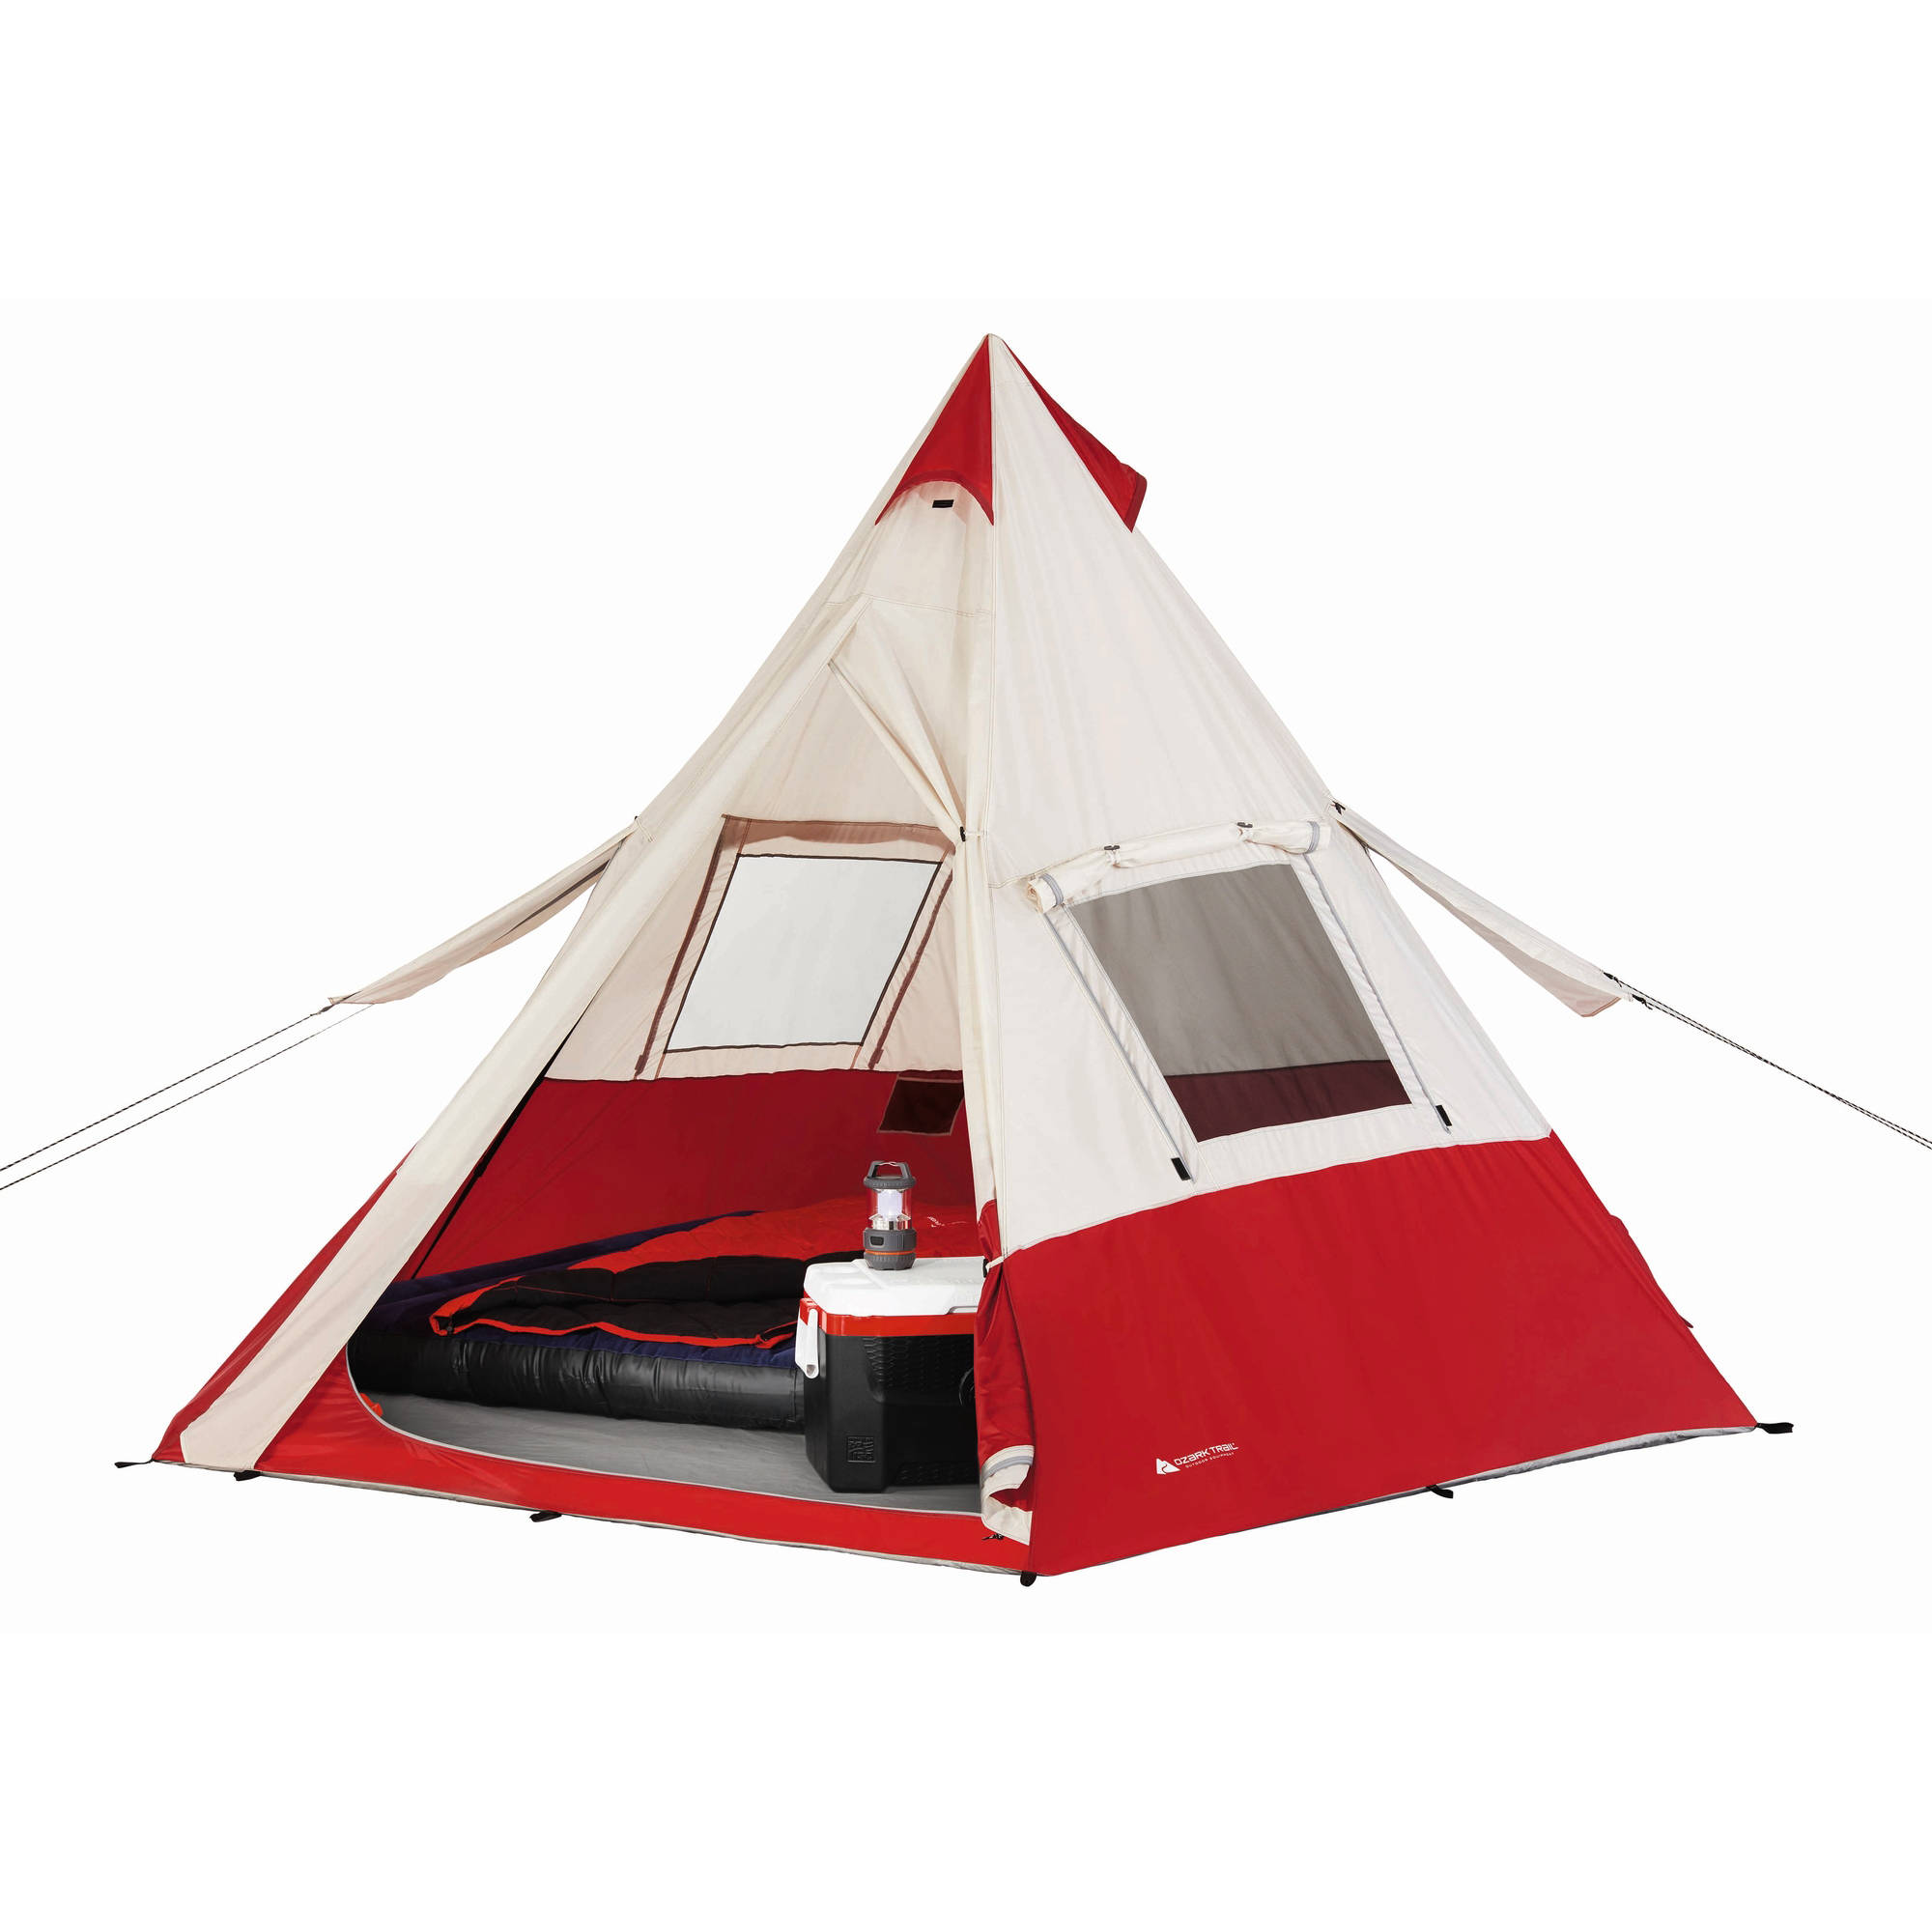 Ozark Trail 7 Person Teepee Tent  sc 1 st  Walmart & Ozark Trail 7 Person Teepee Tent - Walmart.com